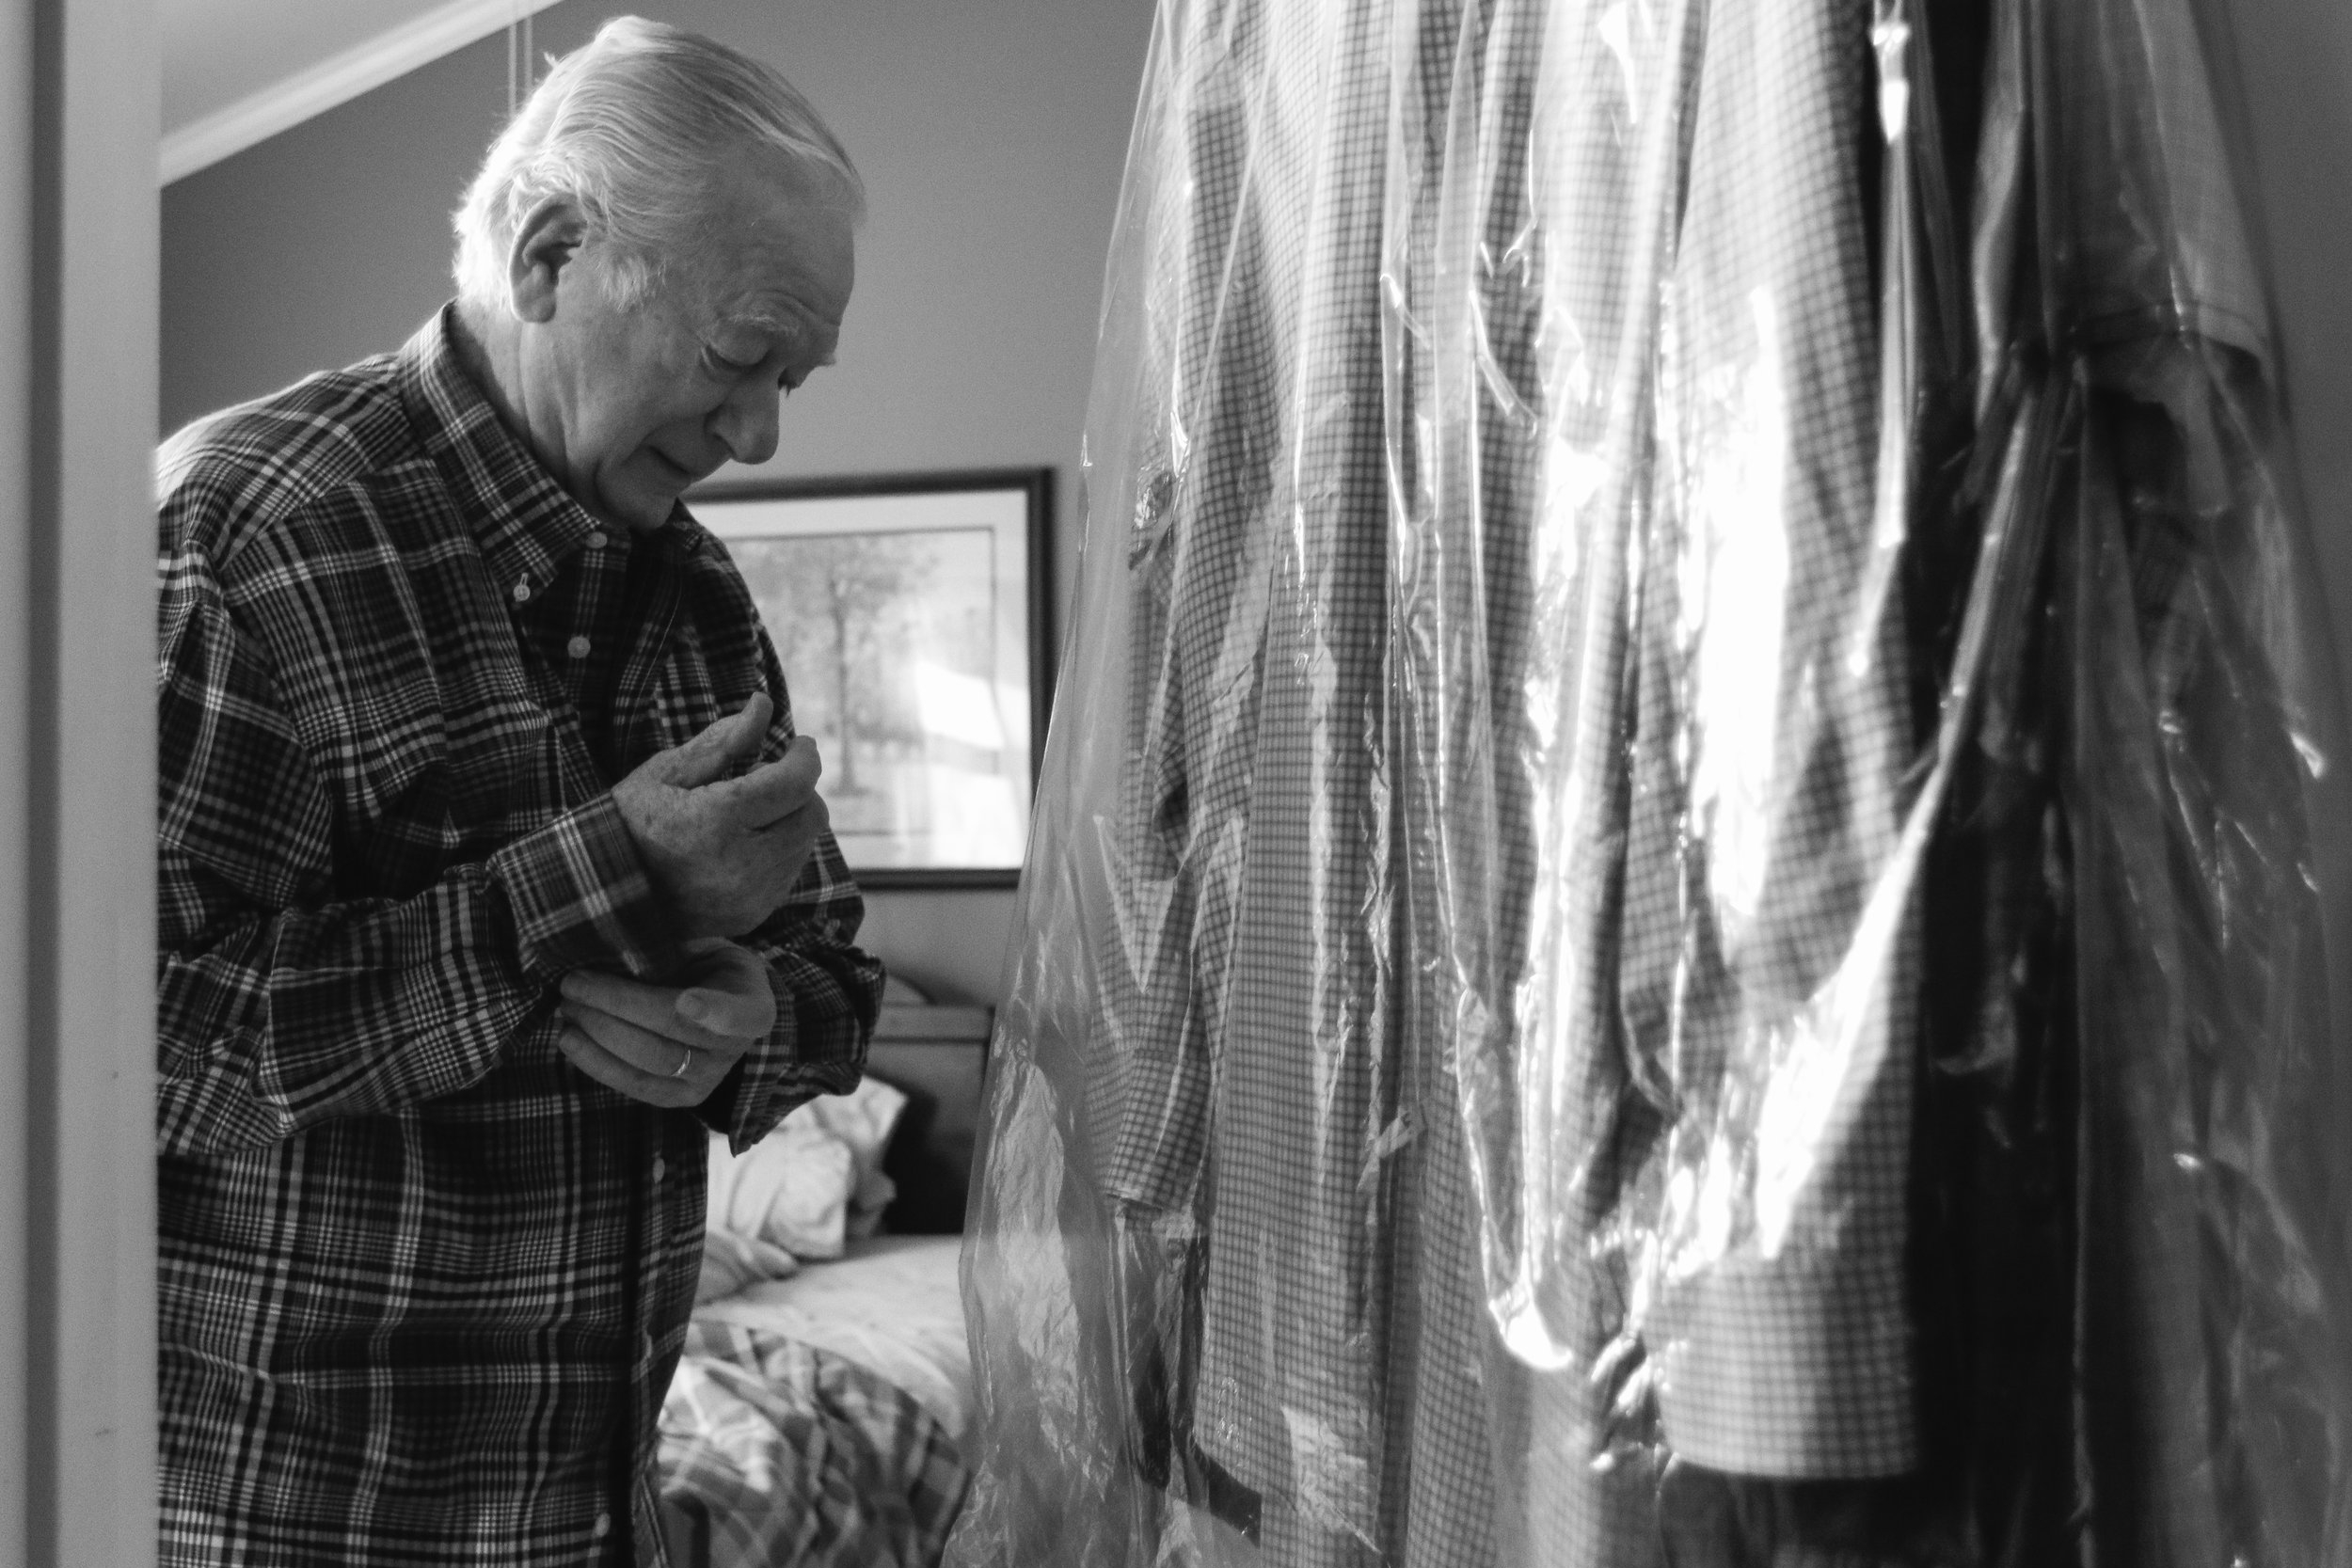 George Cloud gets dressed for the day in Lithia Springs, Georgia, on March 10, 2018. Cloud wears his favorite shirt, the one his wife Esther gifted him for Christmas 2017, one month before her passing.